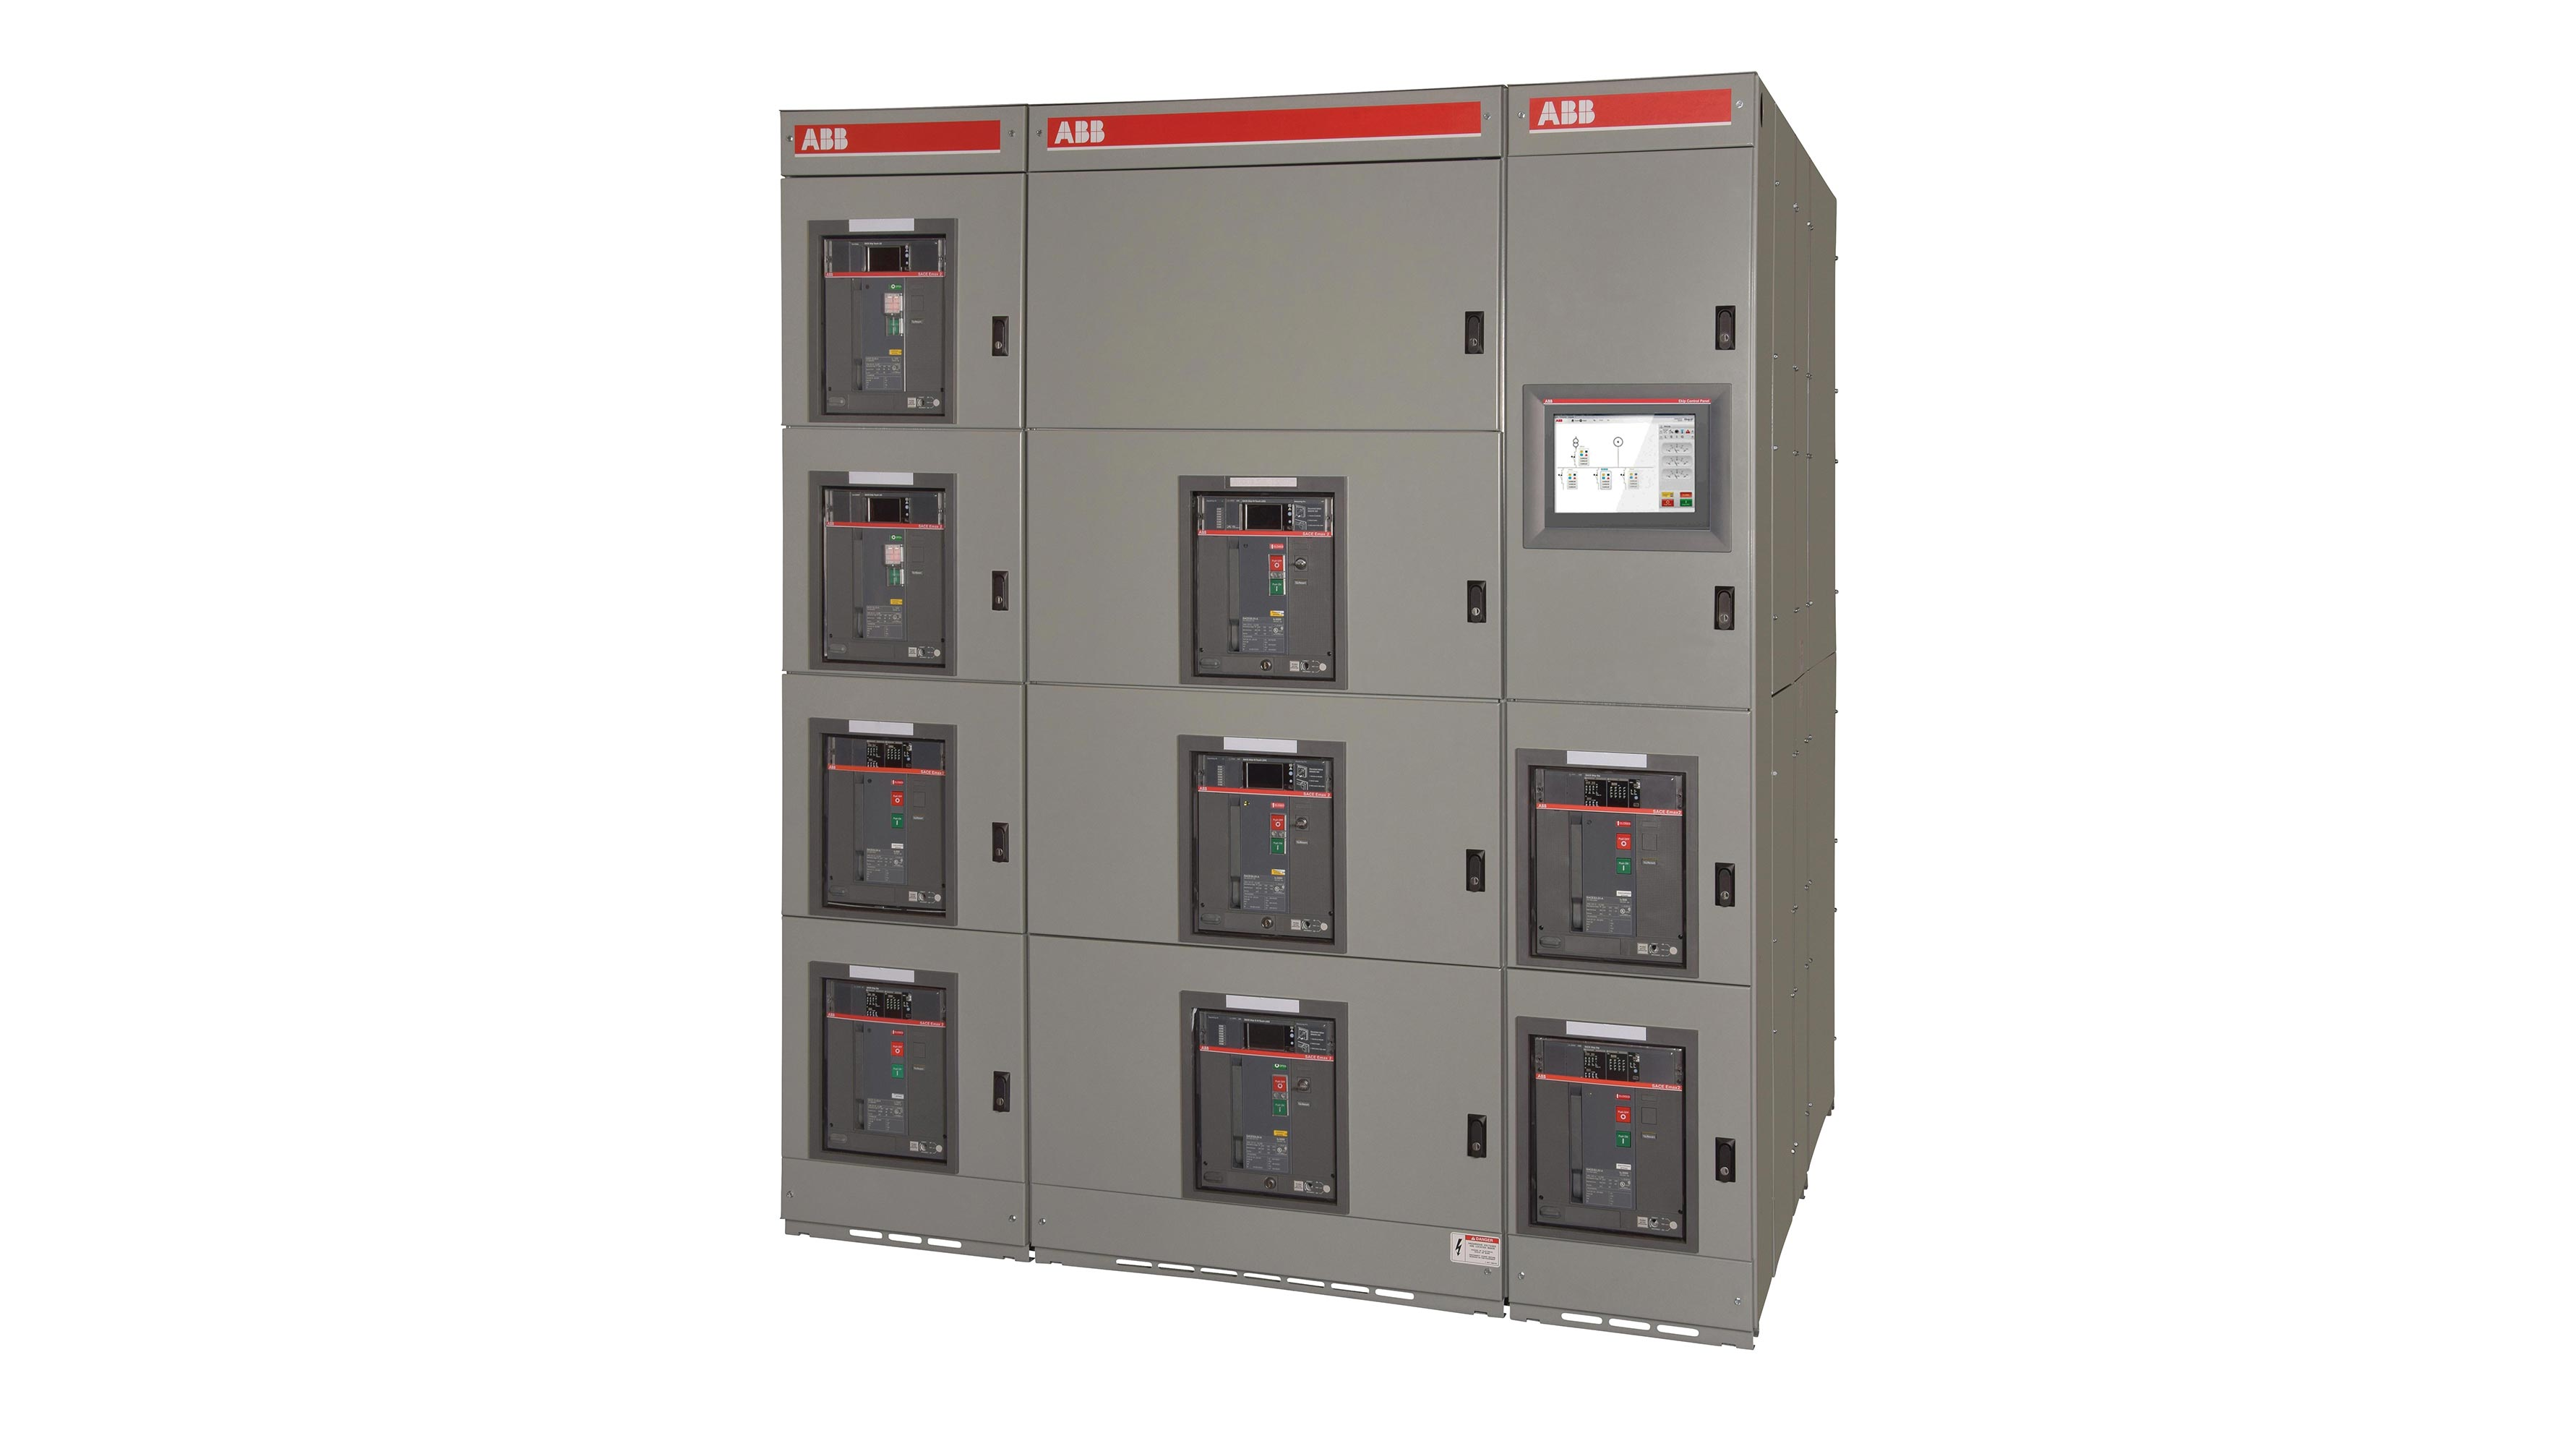 abb launches digital switchgear solutions for u s microgrid management [ 3564 x 2000 Pixel ]